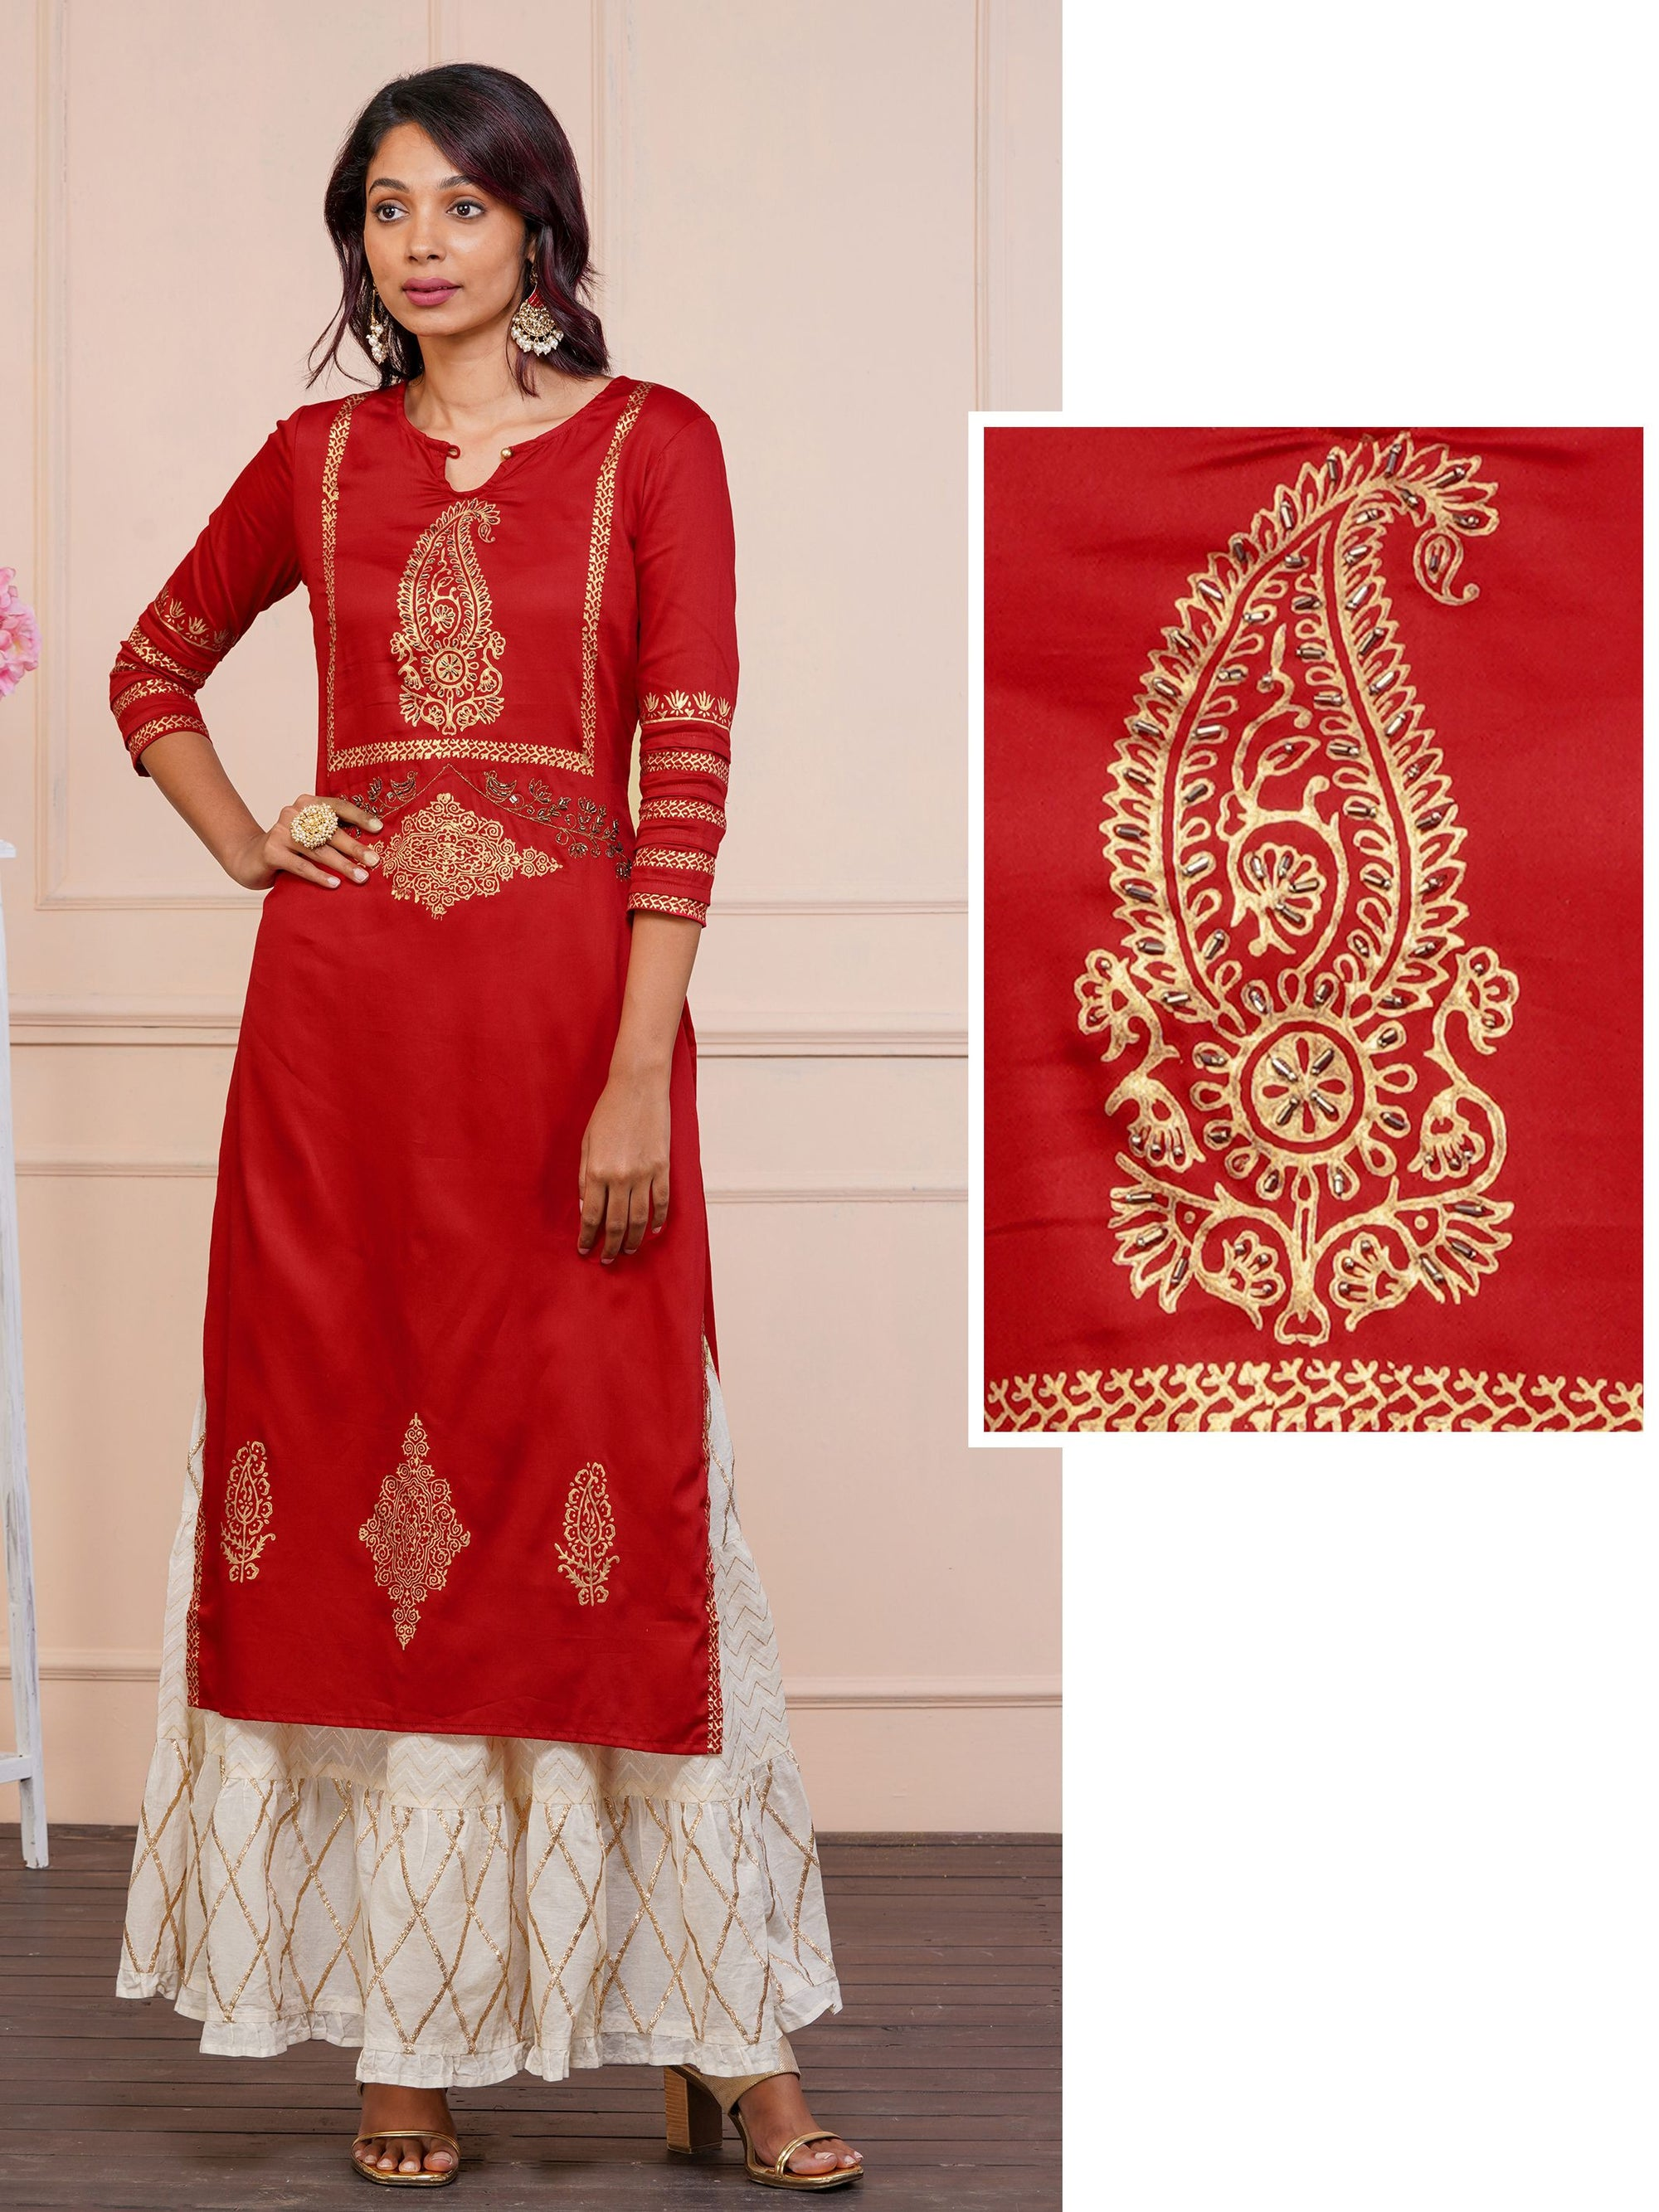 Royal Khari Print And Black Cutdana Work Kurta in Luxe Red